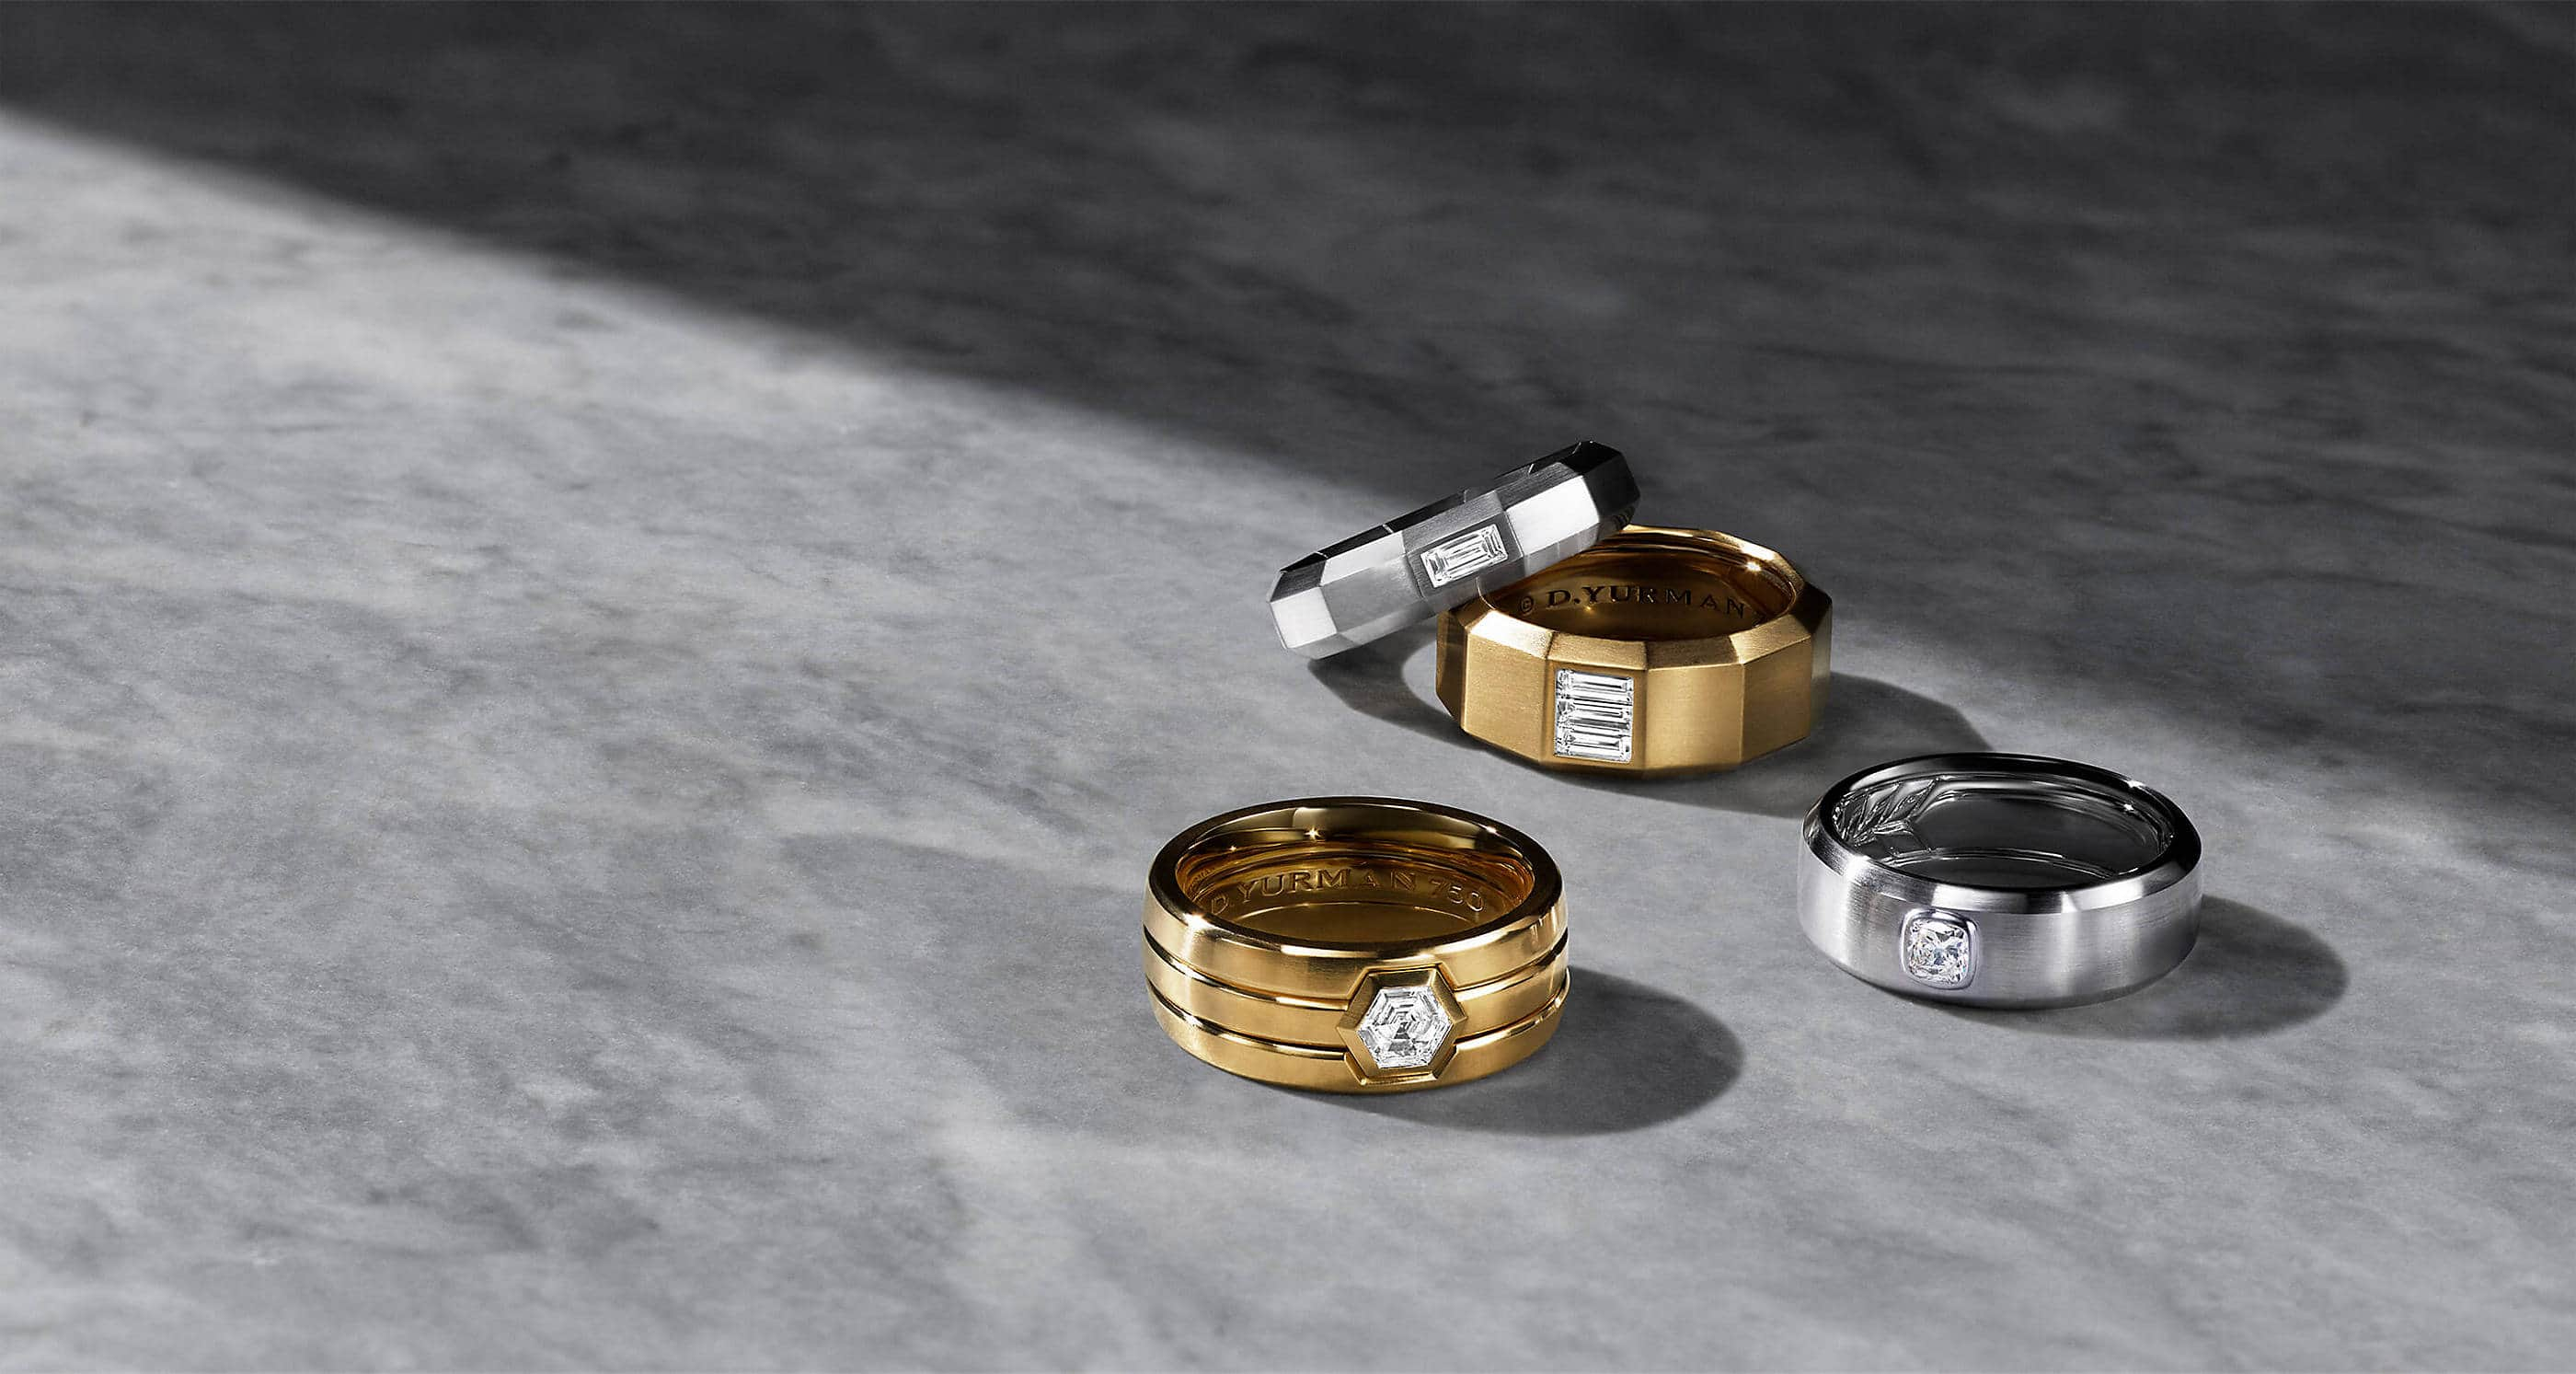 A color photo shows four David Yurman men's band rings scattered on a grey marble surface with hard shadows. The jewelry is crafted from 18K yellow gold or white gold, each with a center diamond.